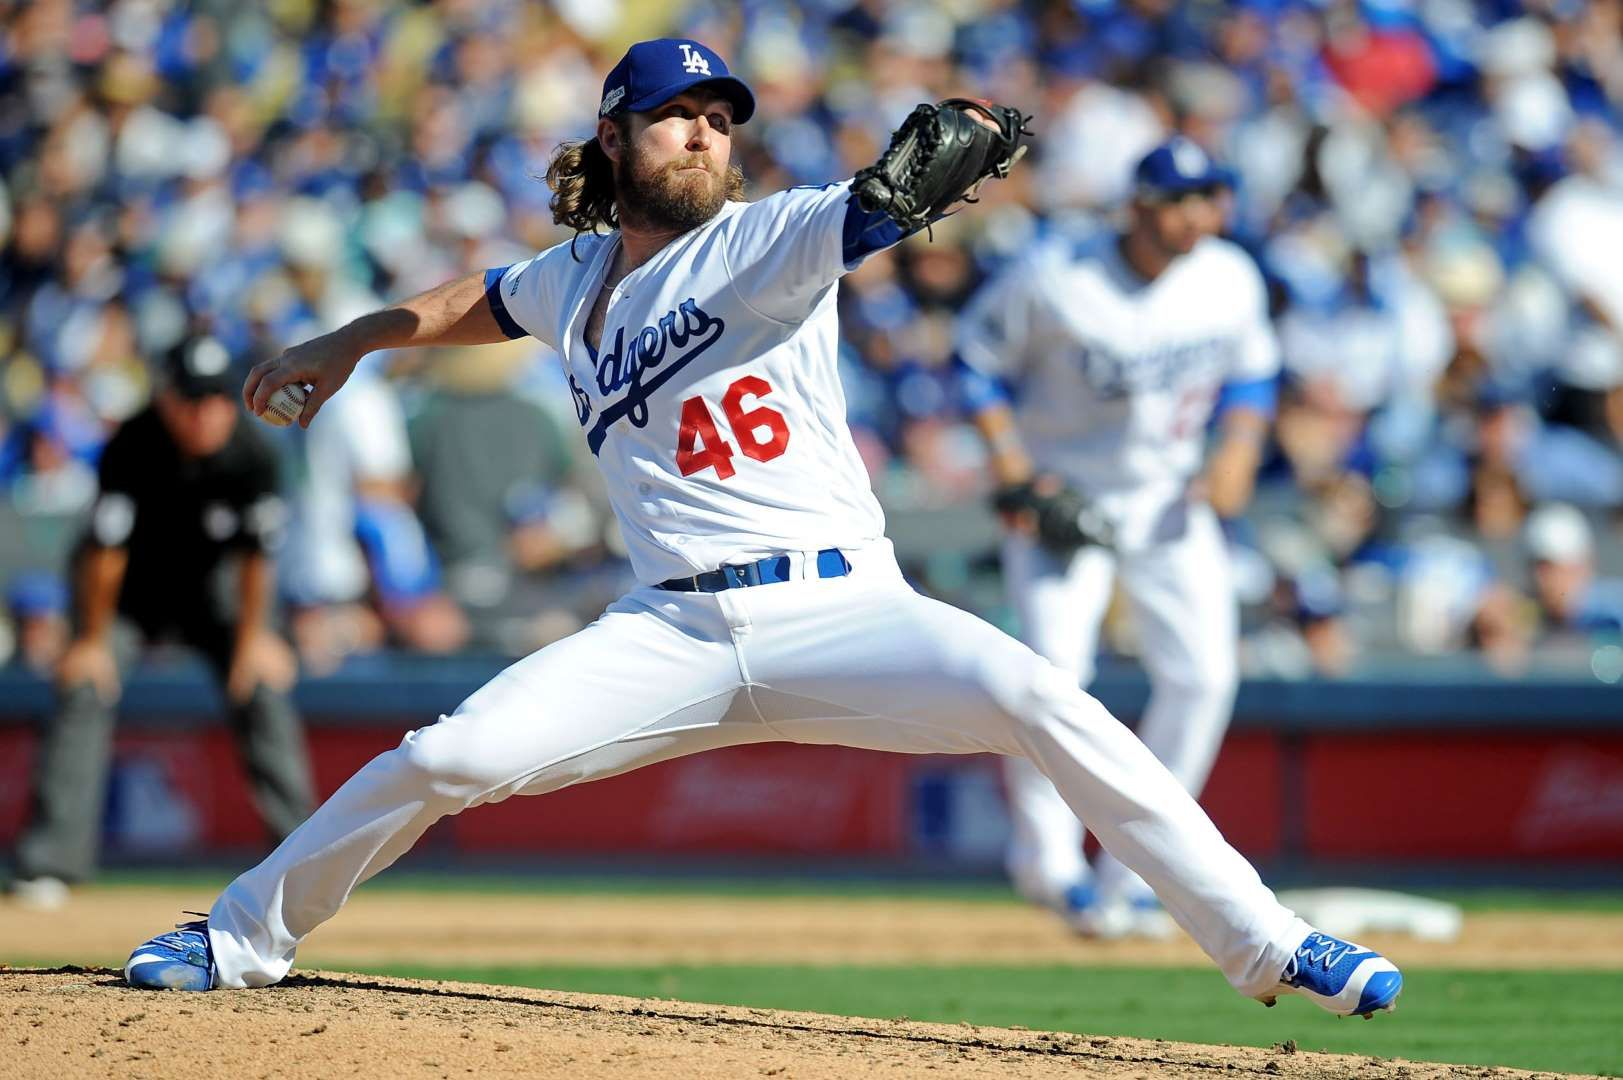 In Relief Dodgers Relief Pitcher Josh Fields Pitches During The Sixth Inning Against The Nationals In Game 3 Of The Nlds Mlb Mlb The Show Usa Today Sports